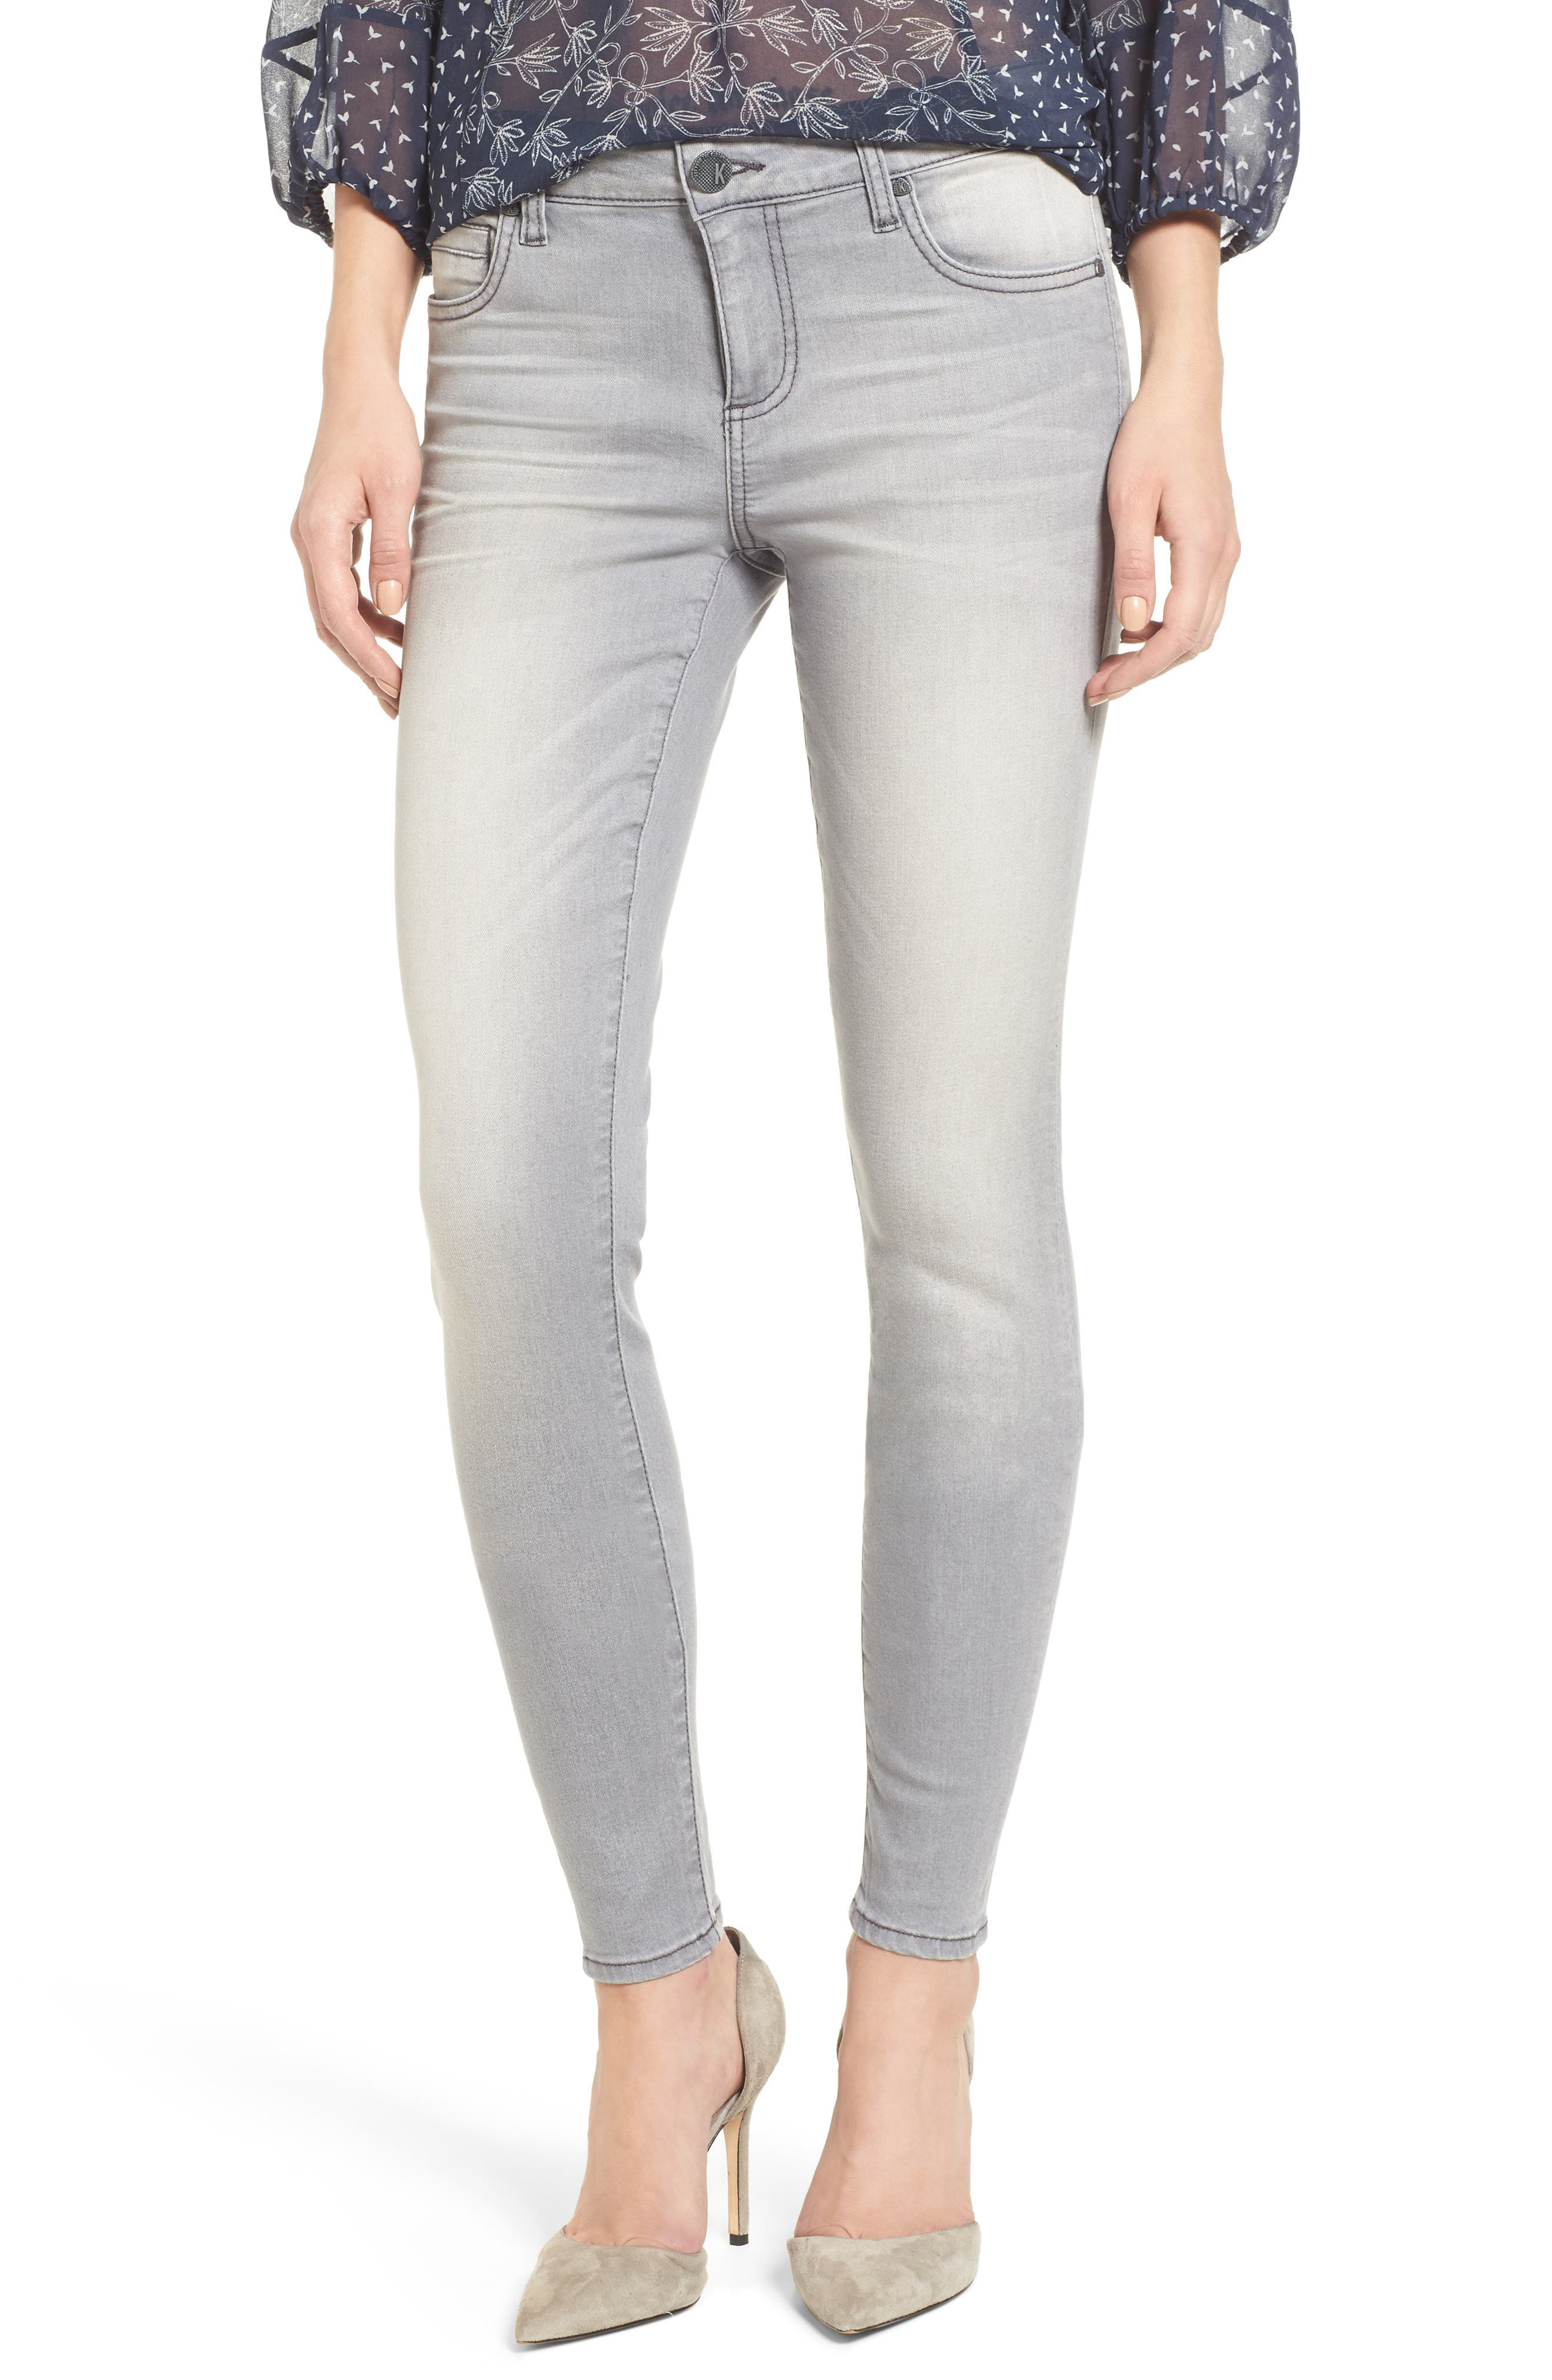 Main Image - Kut from the Kloth Mia Skinny Jeans (Prevailed)